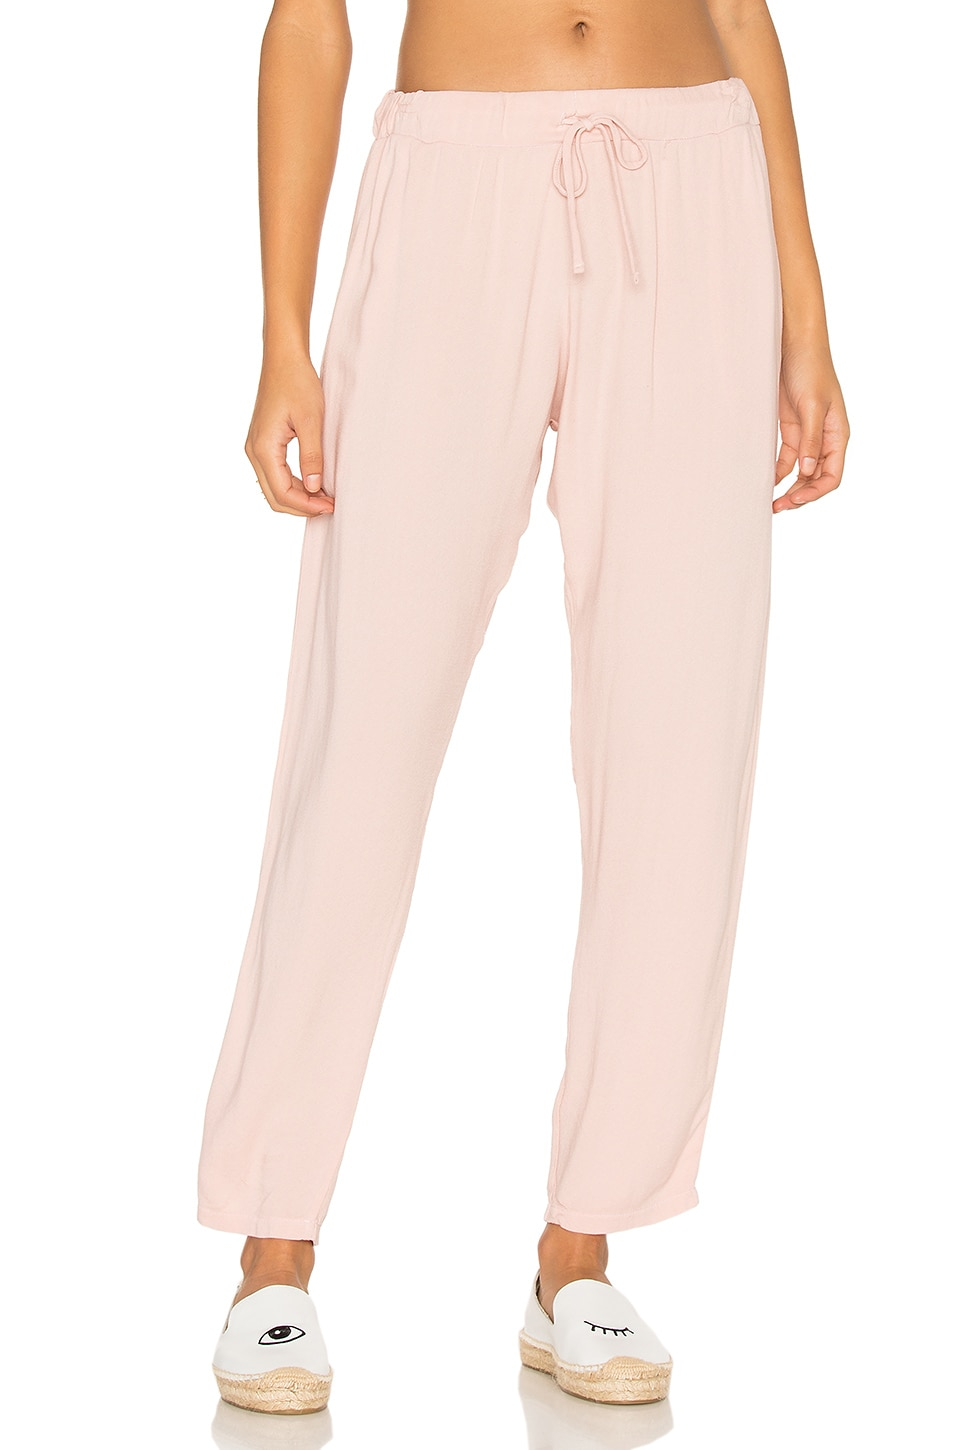 Astro Relaxed Trouser Pant at REVOLVE